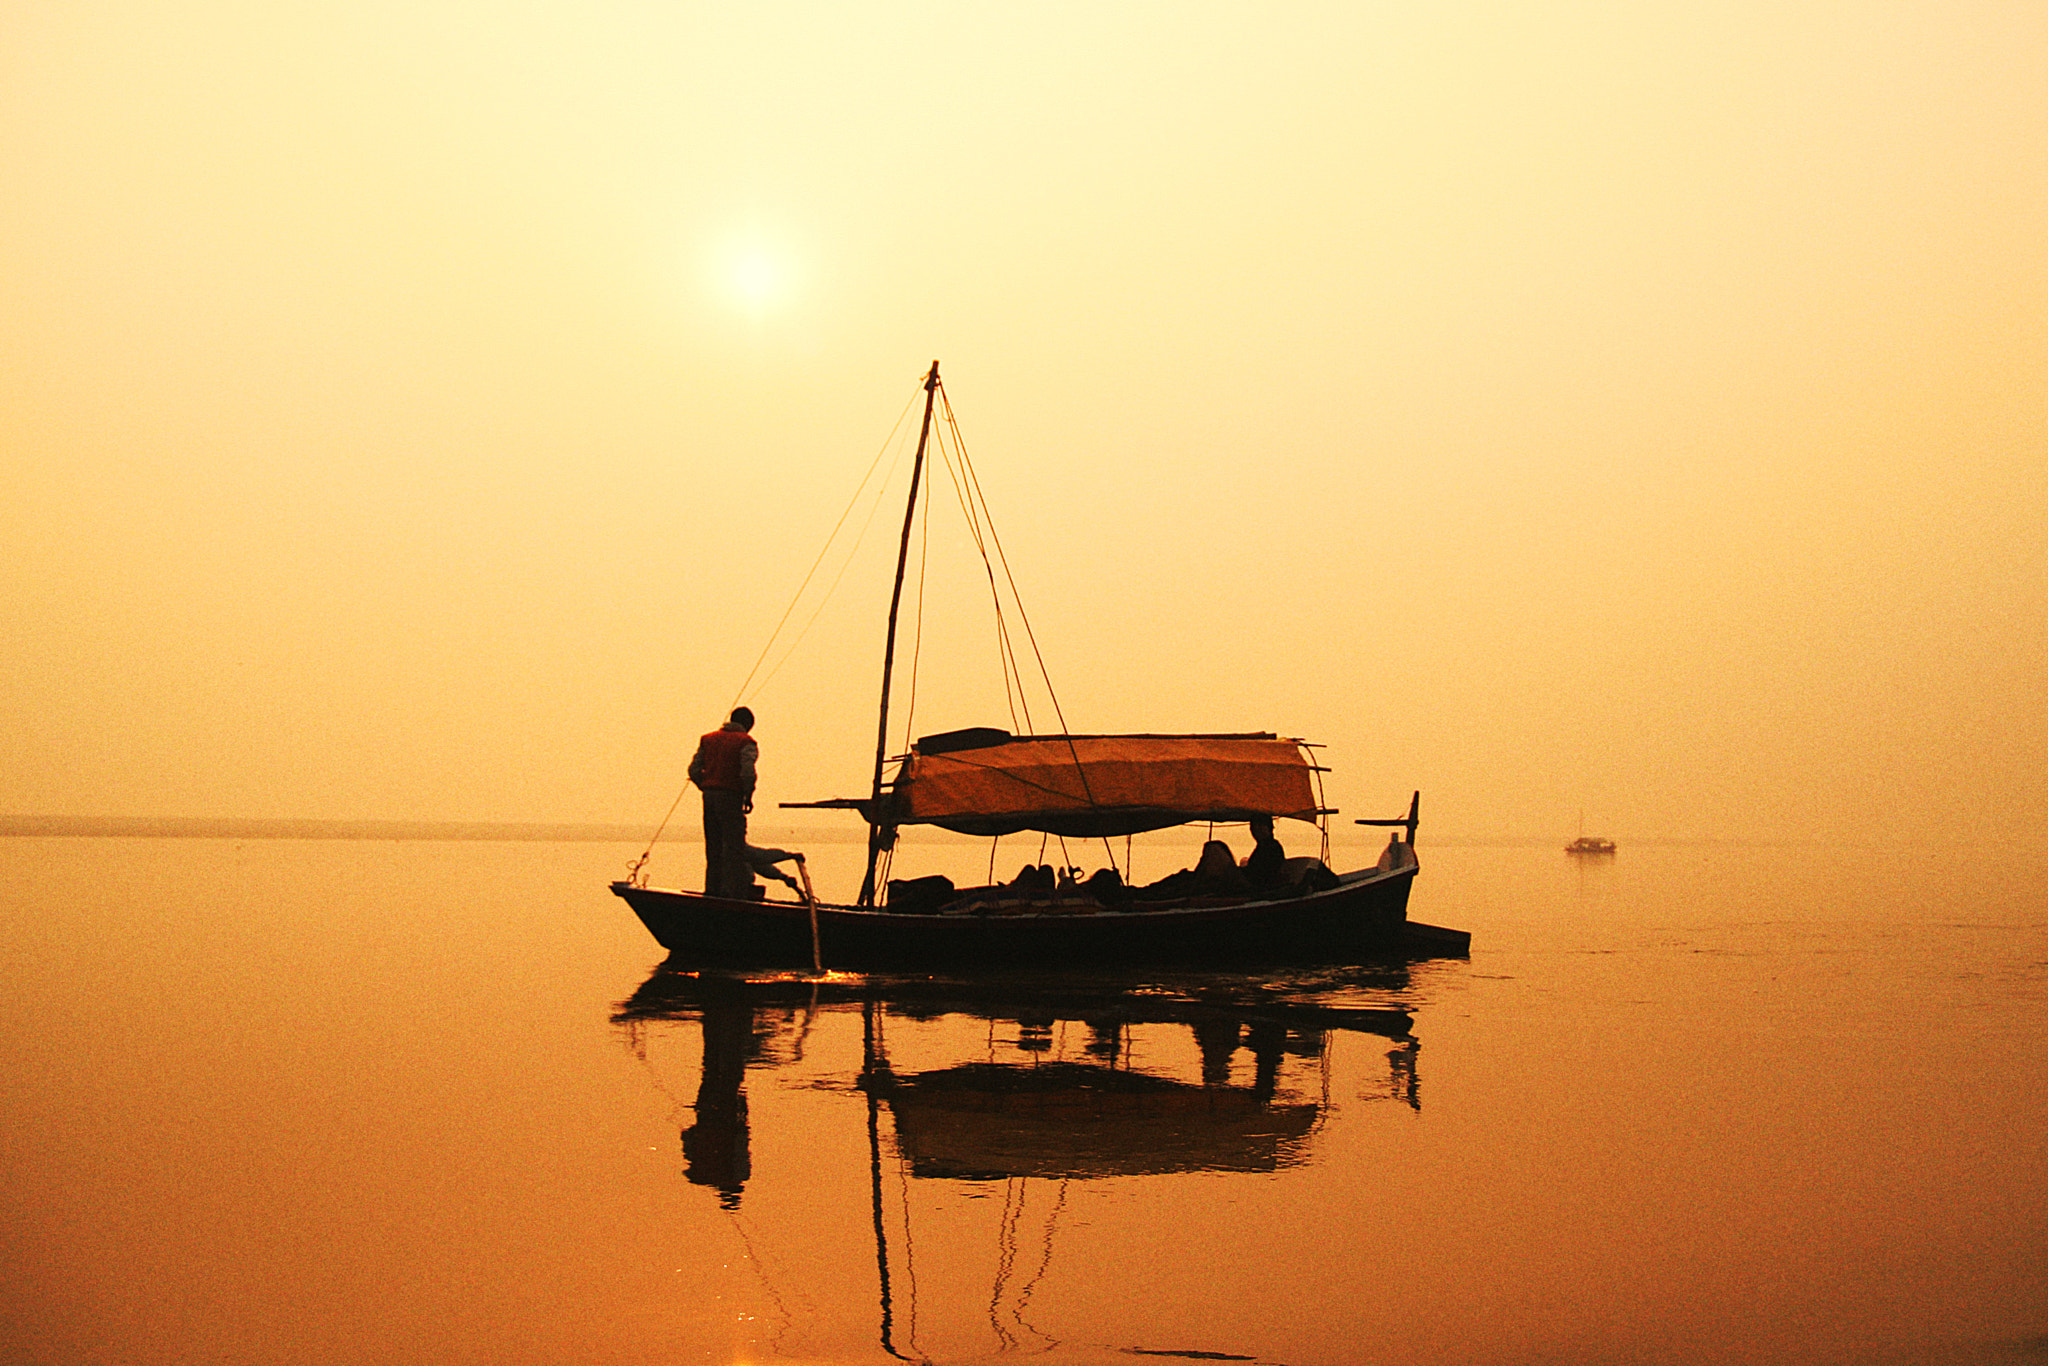 Photograph C350D-IMG_2613-PR Canon EOS 350D Ganges River India by Nic Prins on 500px